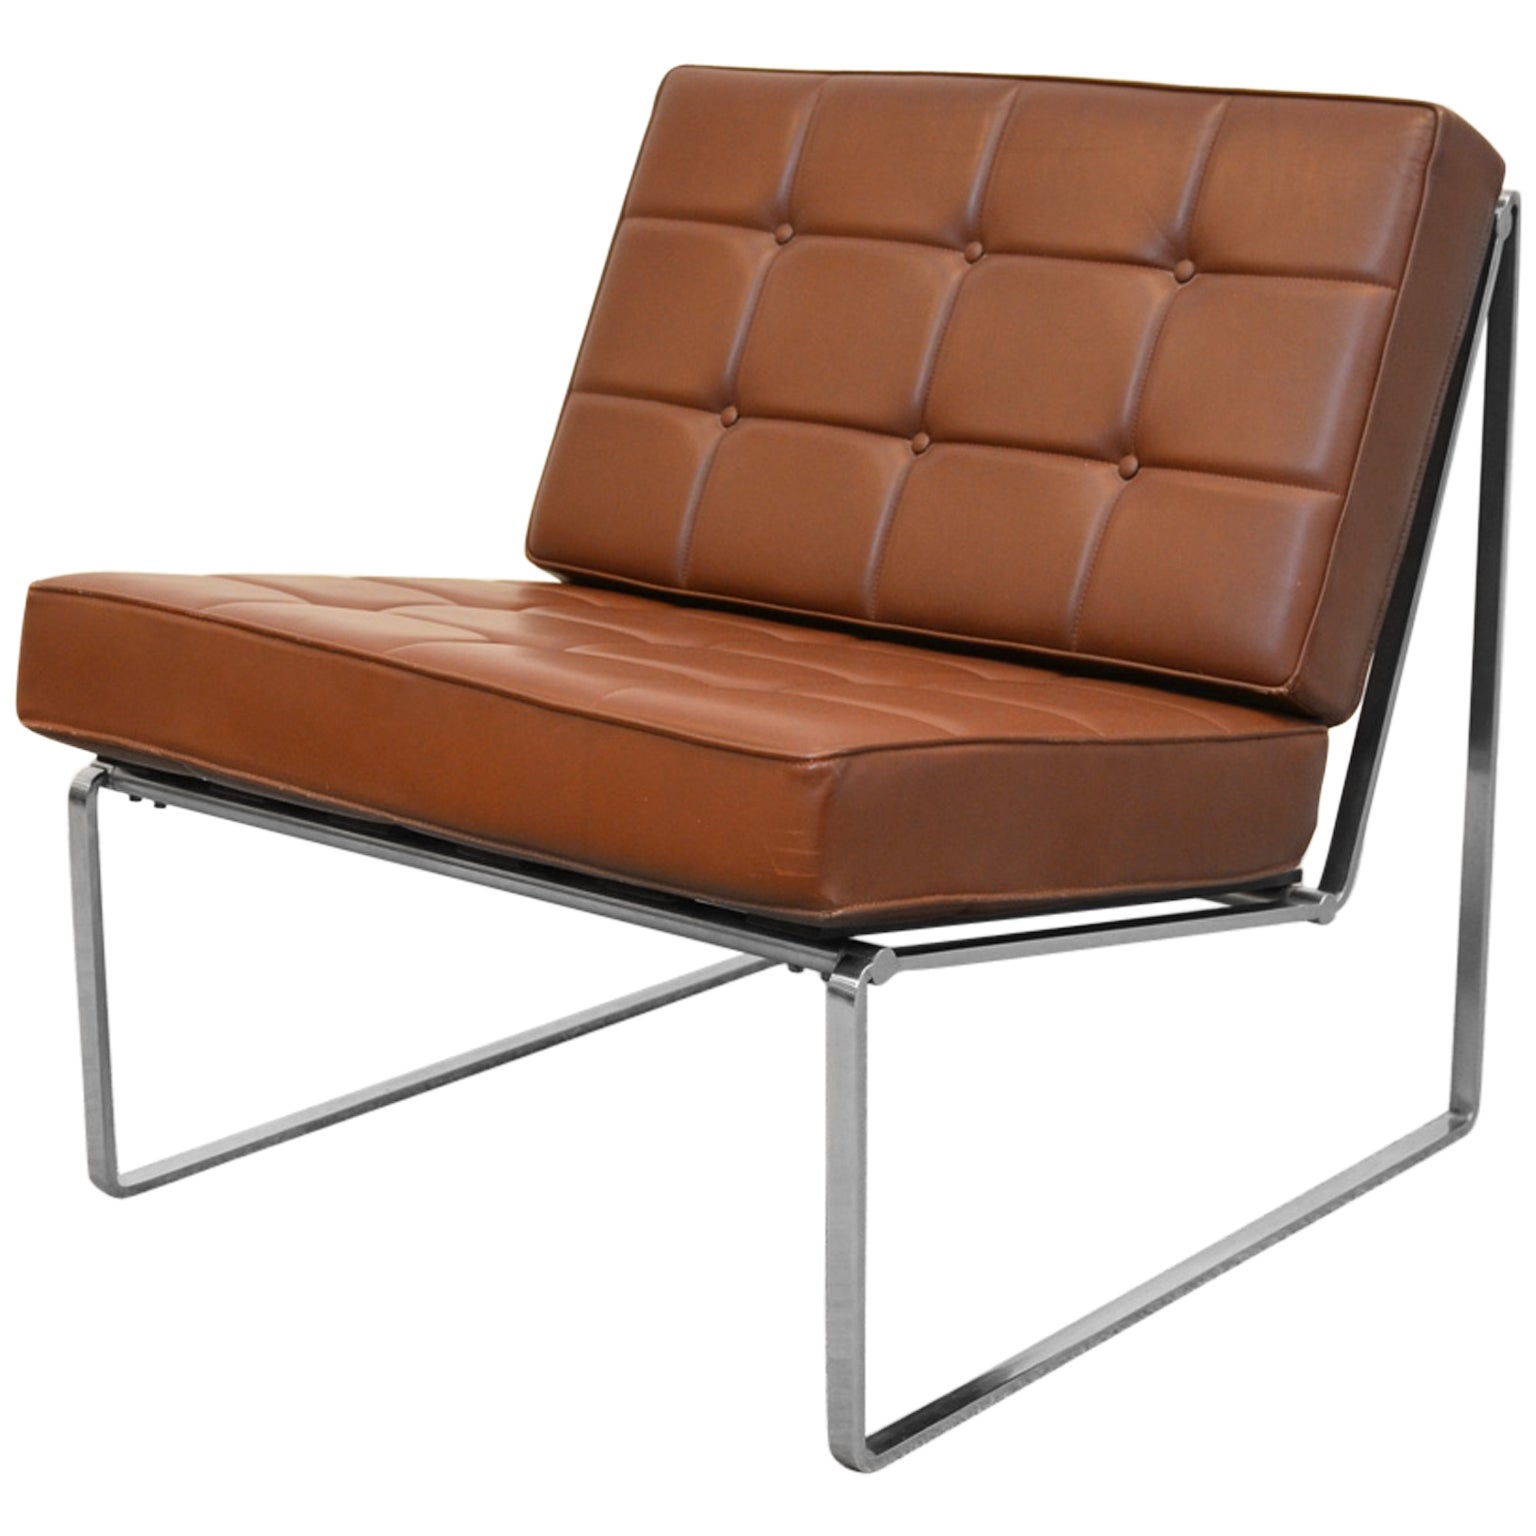 Midcentury Lounge Chair 024 by Kho Liang Ie for Artifort, Netherlands